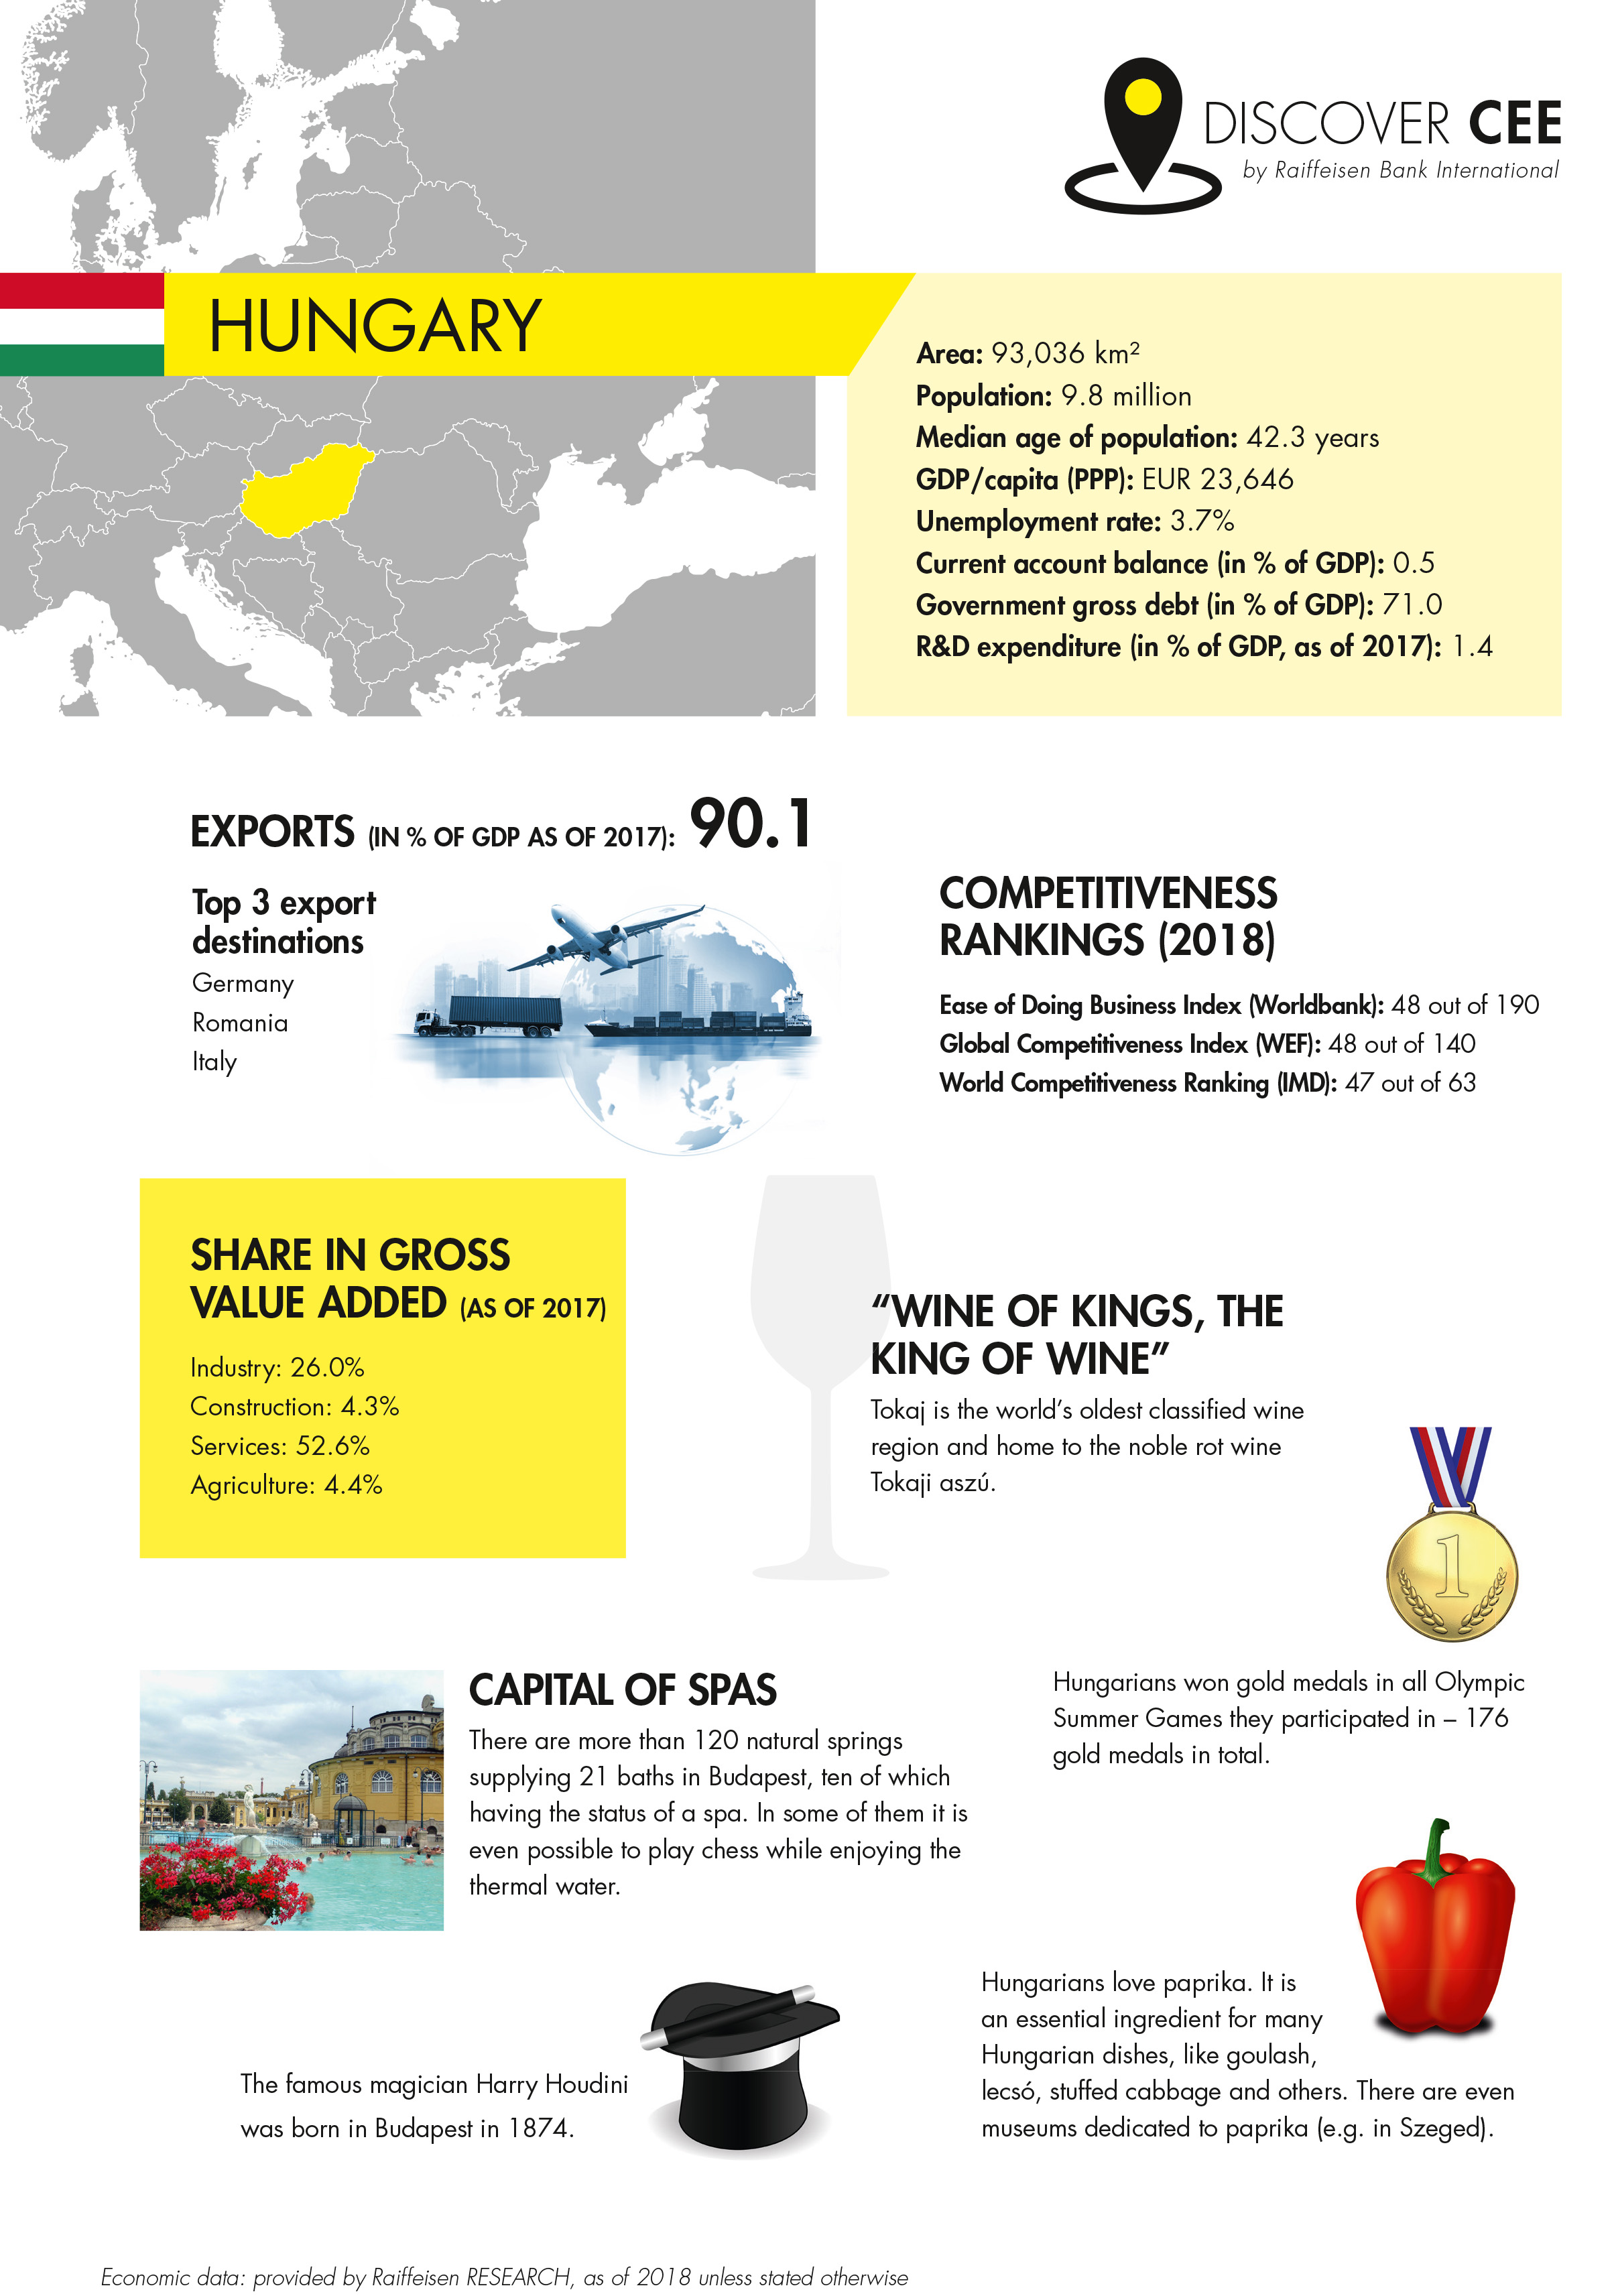 Economic and cultural facts about Hungary at a glance